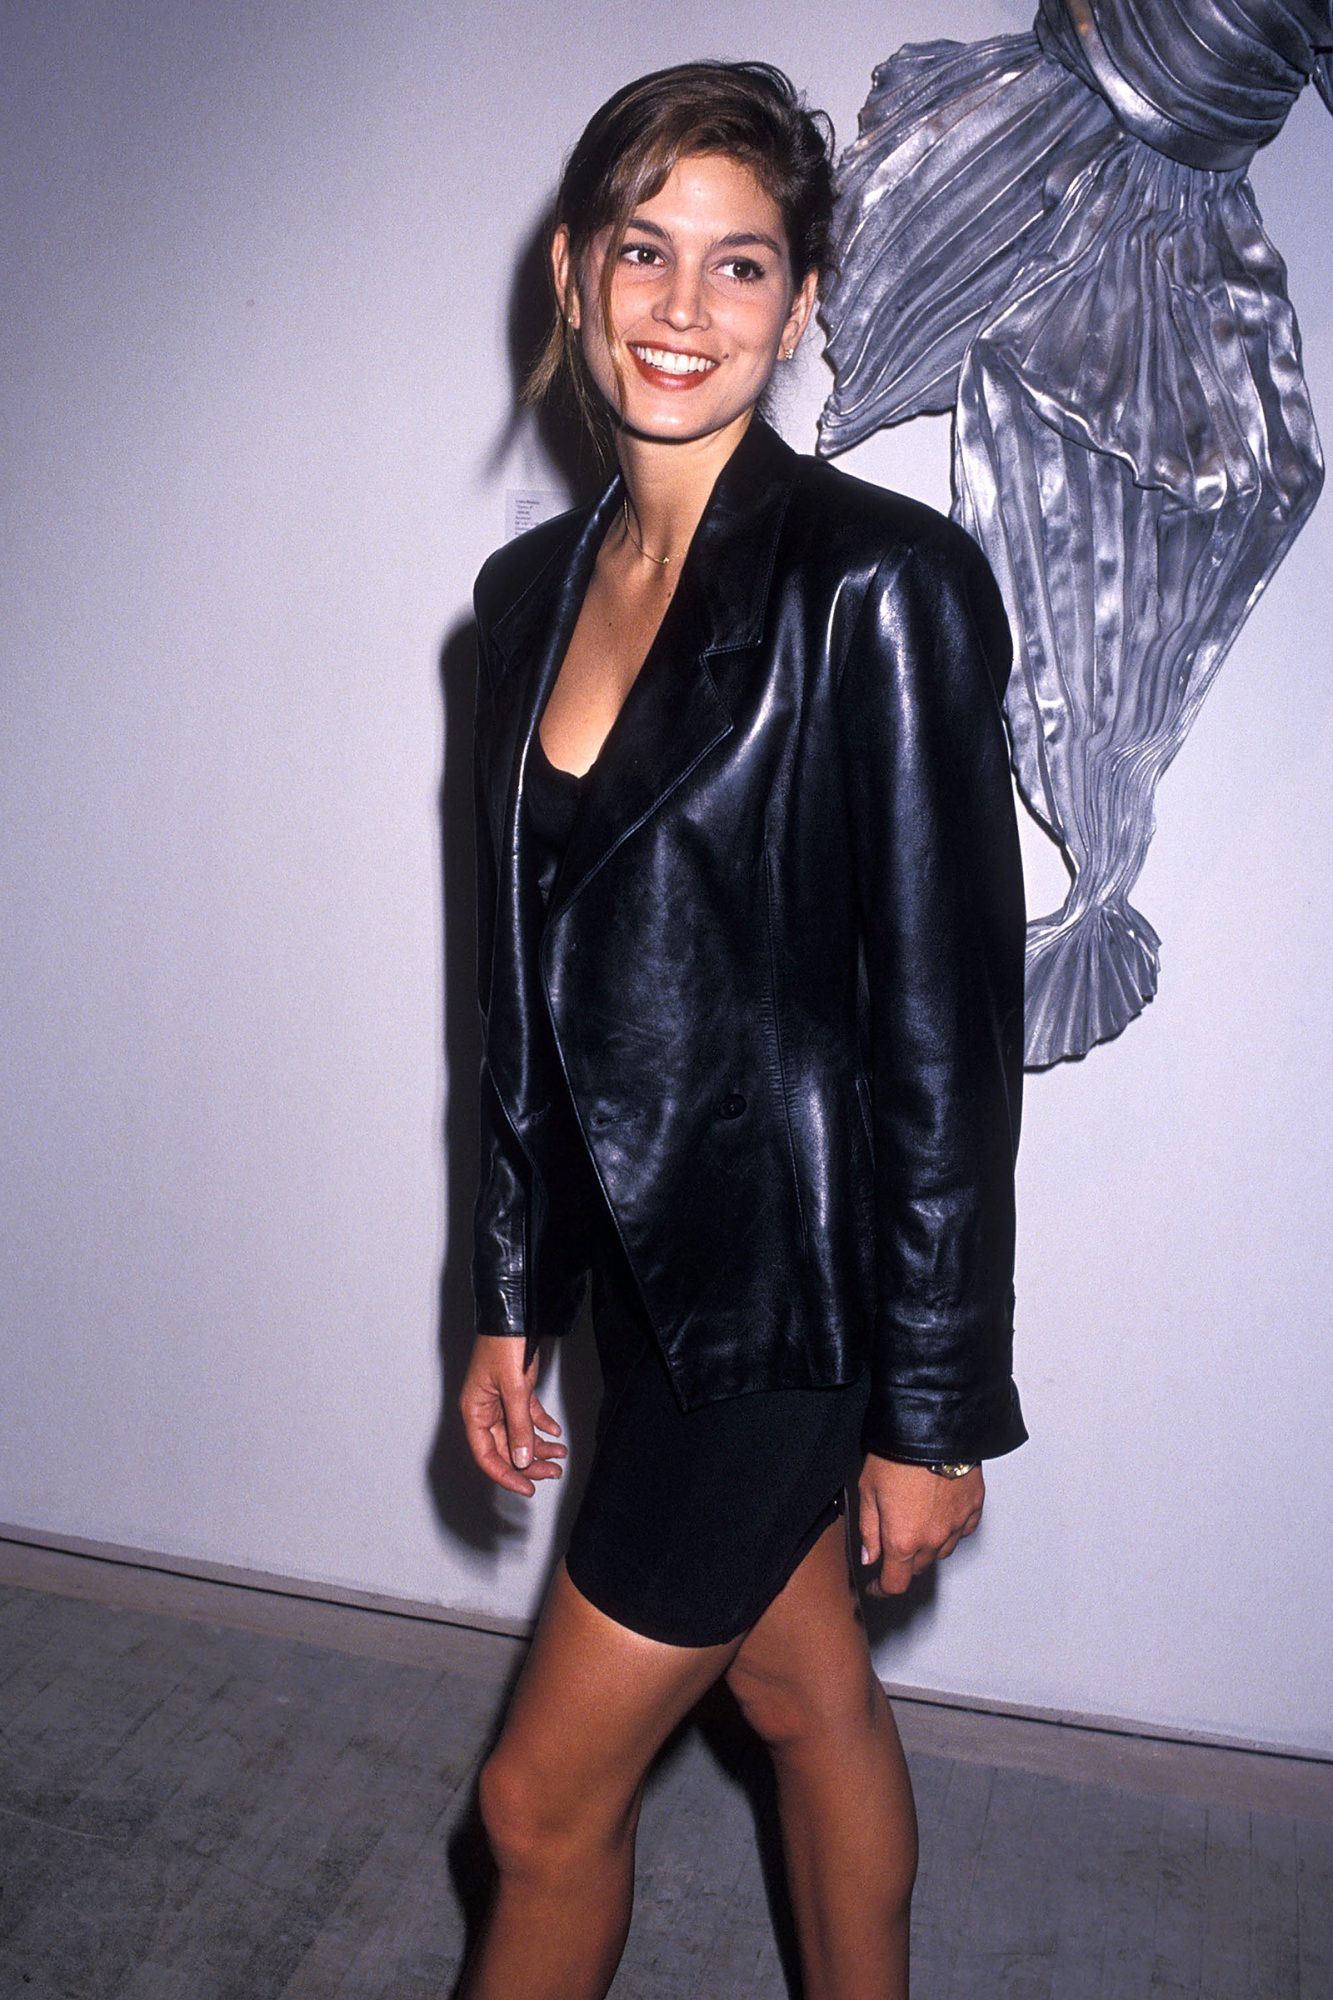 """Model Cindy Crawford attends the """"Art Pro Choice"""" Cocktail Party and Auction to Benefit the National Abortion League on March 13, 1990 at the Brandt Building in New York City"""